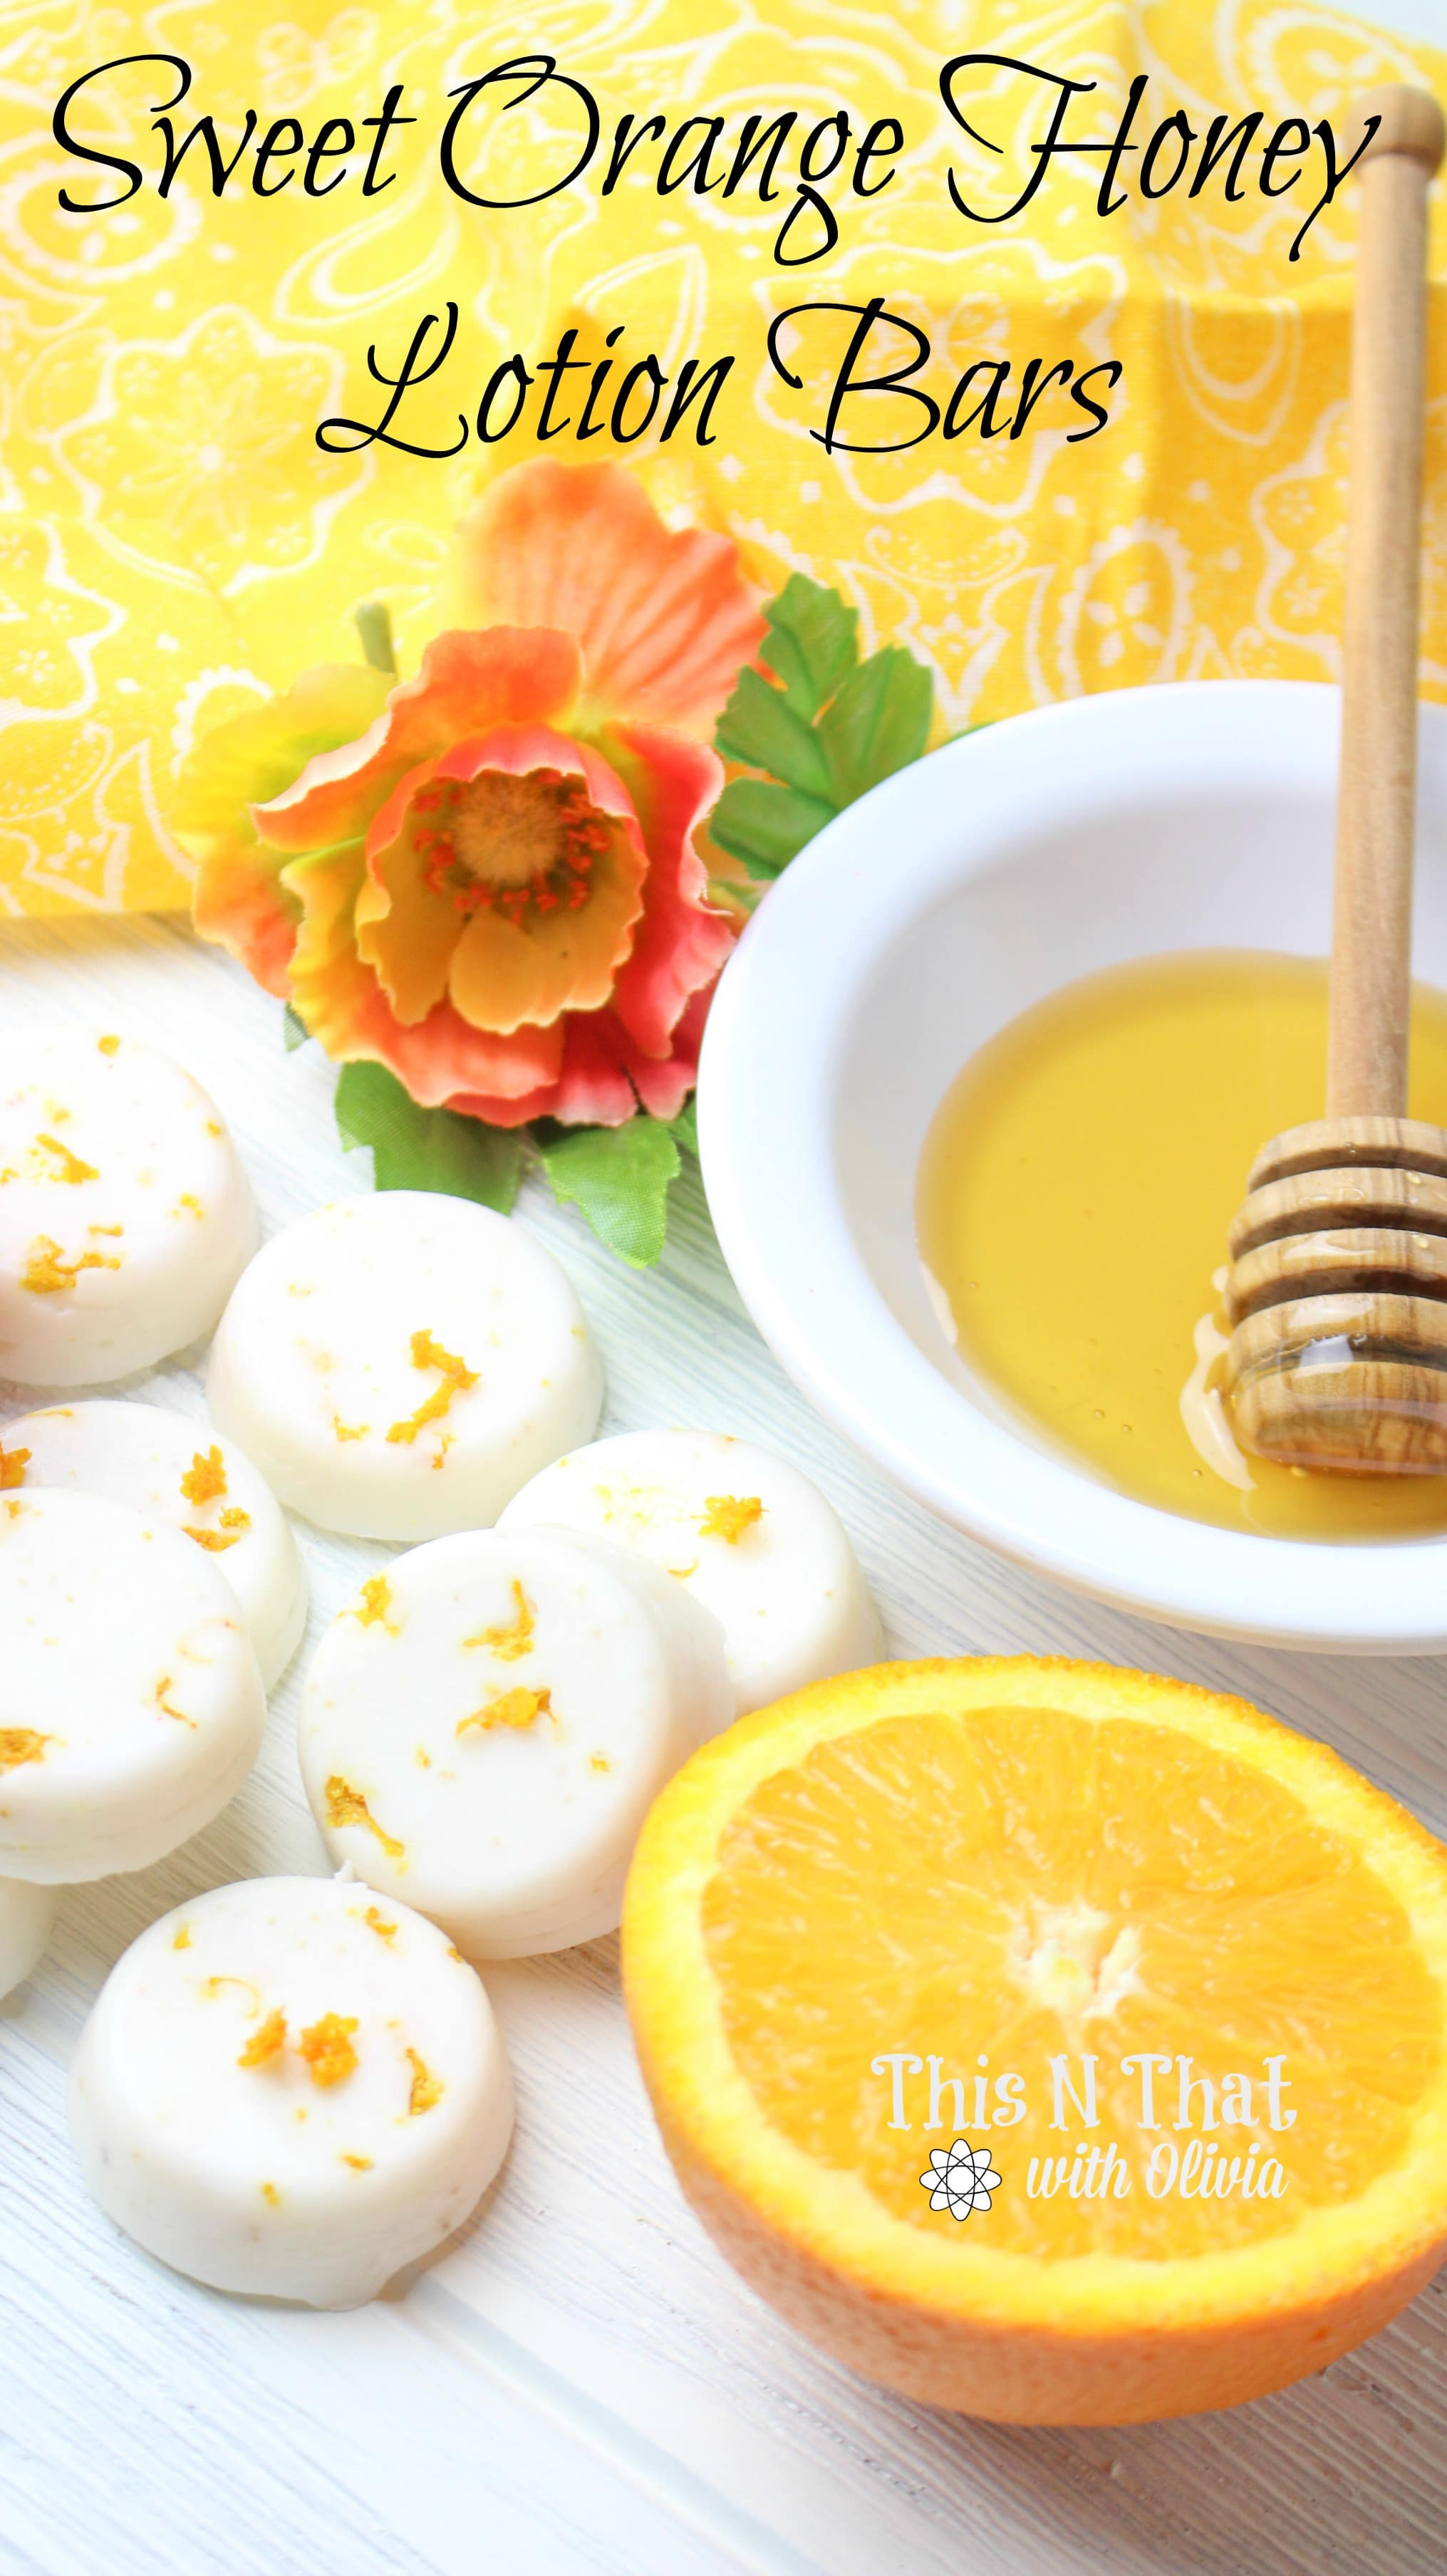 Sweet Orange Honey Lotion Bars